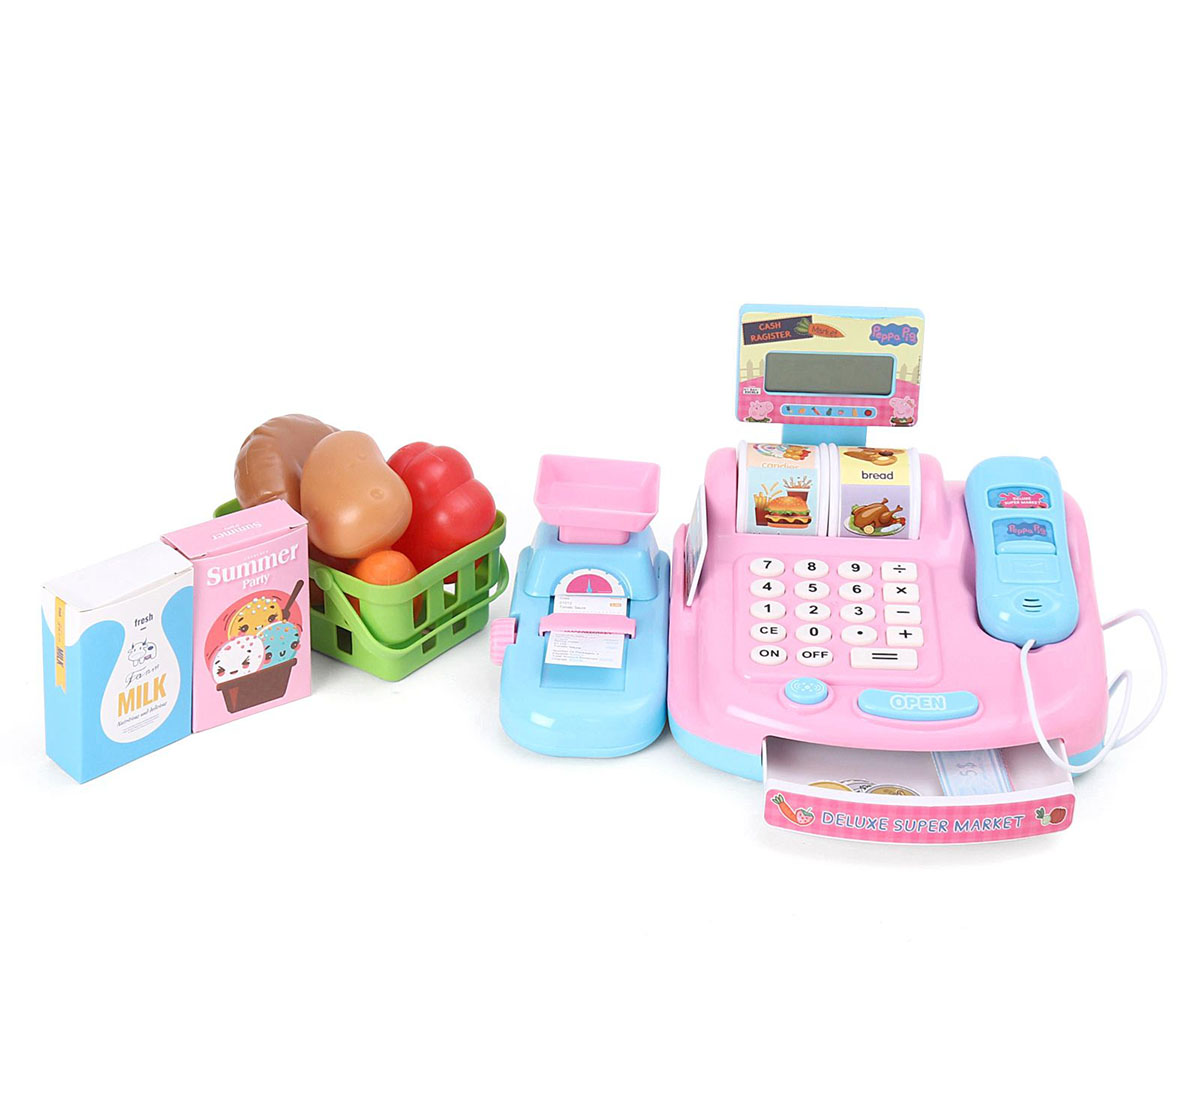 Peppa Pig | Peppa Mini Cash Register Set with Sound for Girls age 3Y+